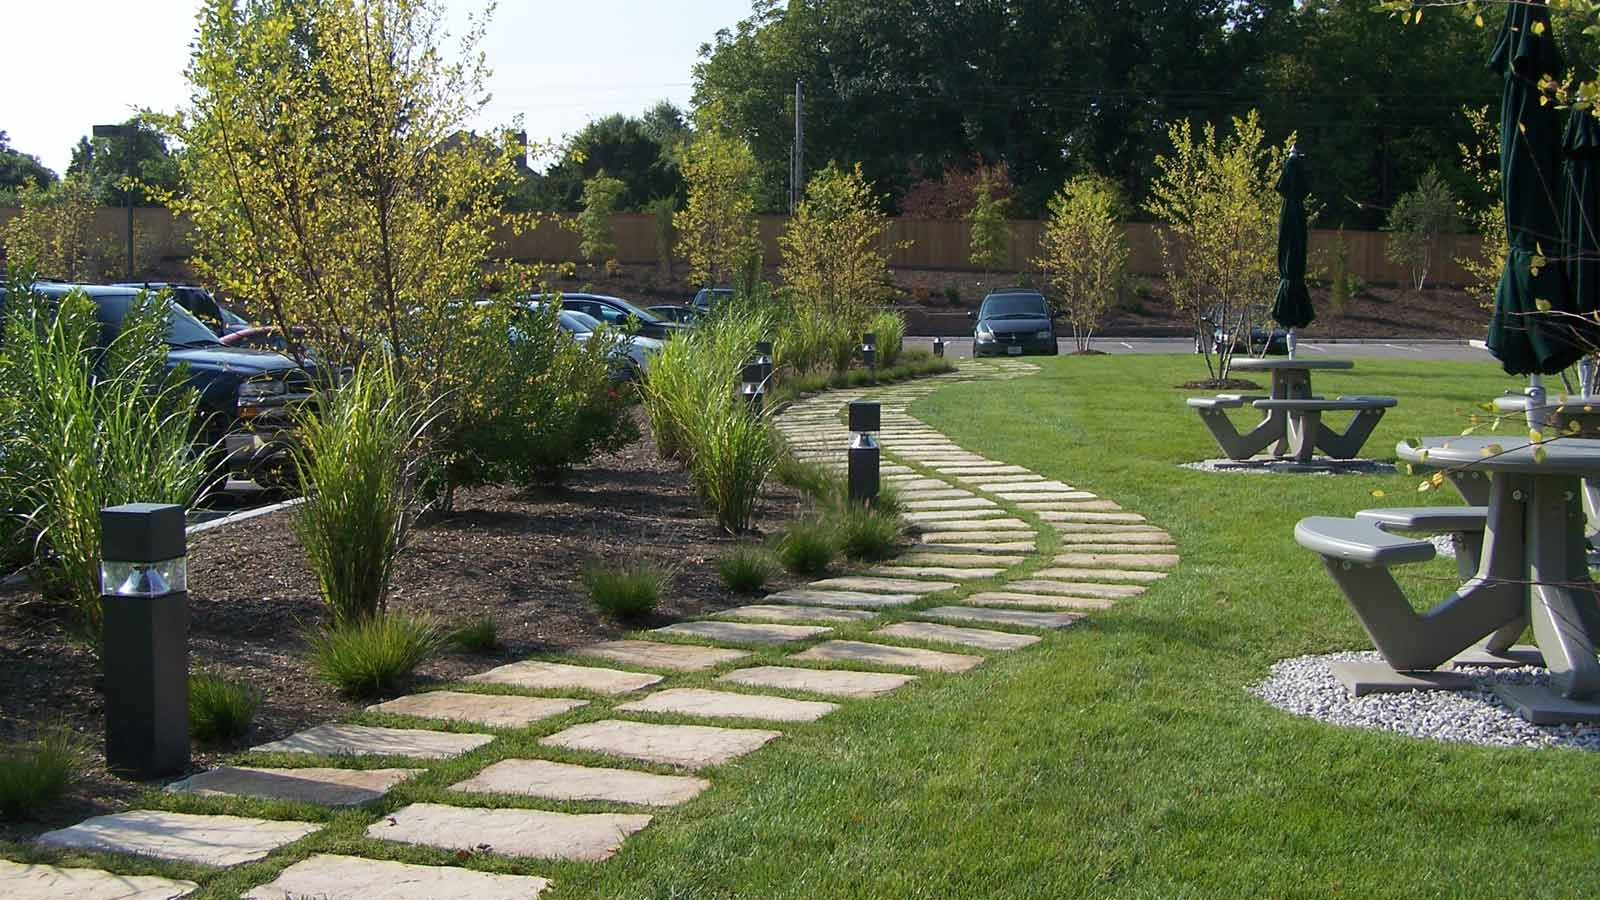 Commercial Landscaping-Carrollton TX Landscape Designs & Outdoor Living Areas-We offer Landscape Design, Outdoor Patios & Pergolas, Outdoor Living Spaces, Stonescapes, Residential & Commercial Landscaping, Irrigation Installation & Repairs, Drainage Systems, Landscape Lighting, Outdoor Living Spaces, Tree Service, Lawn Service, and more.